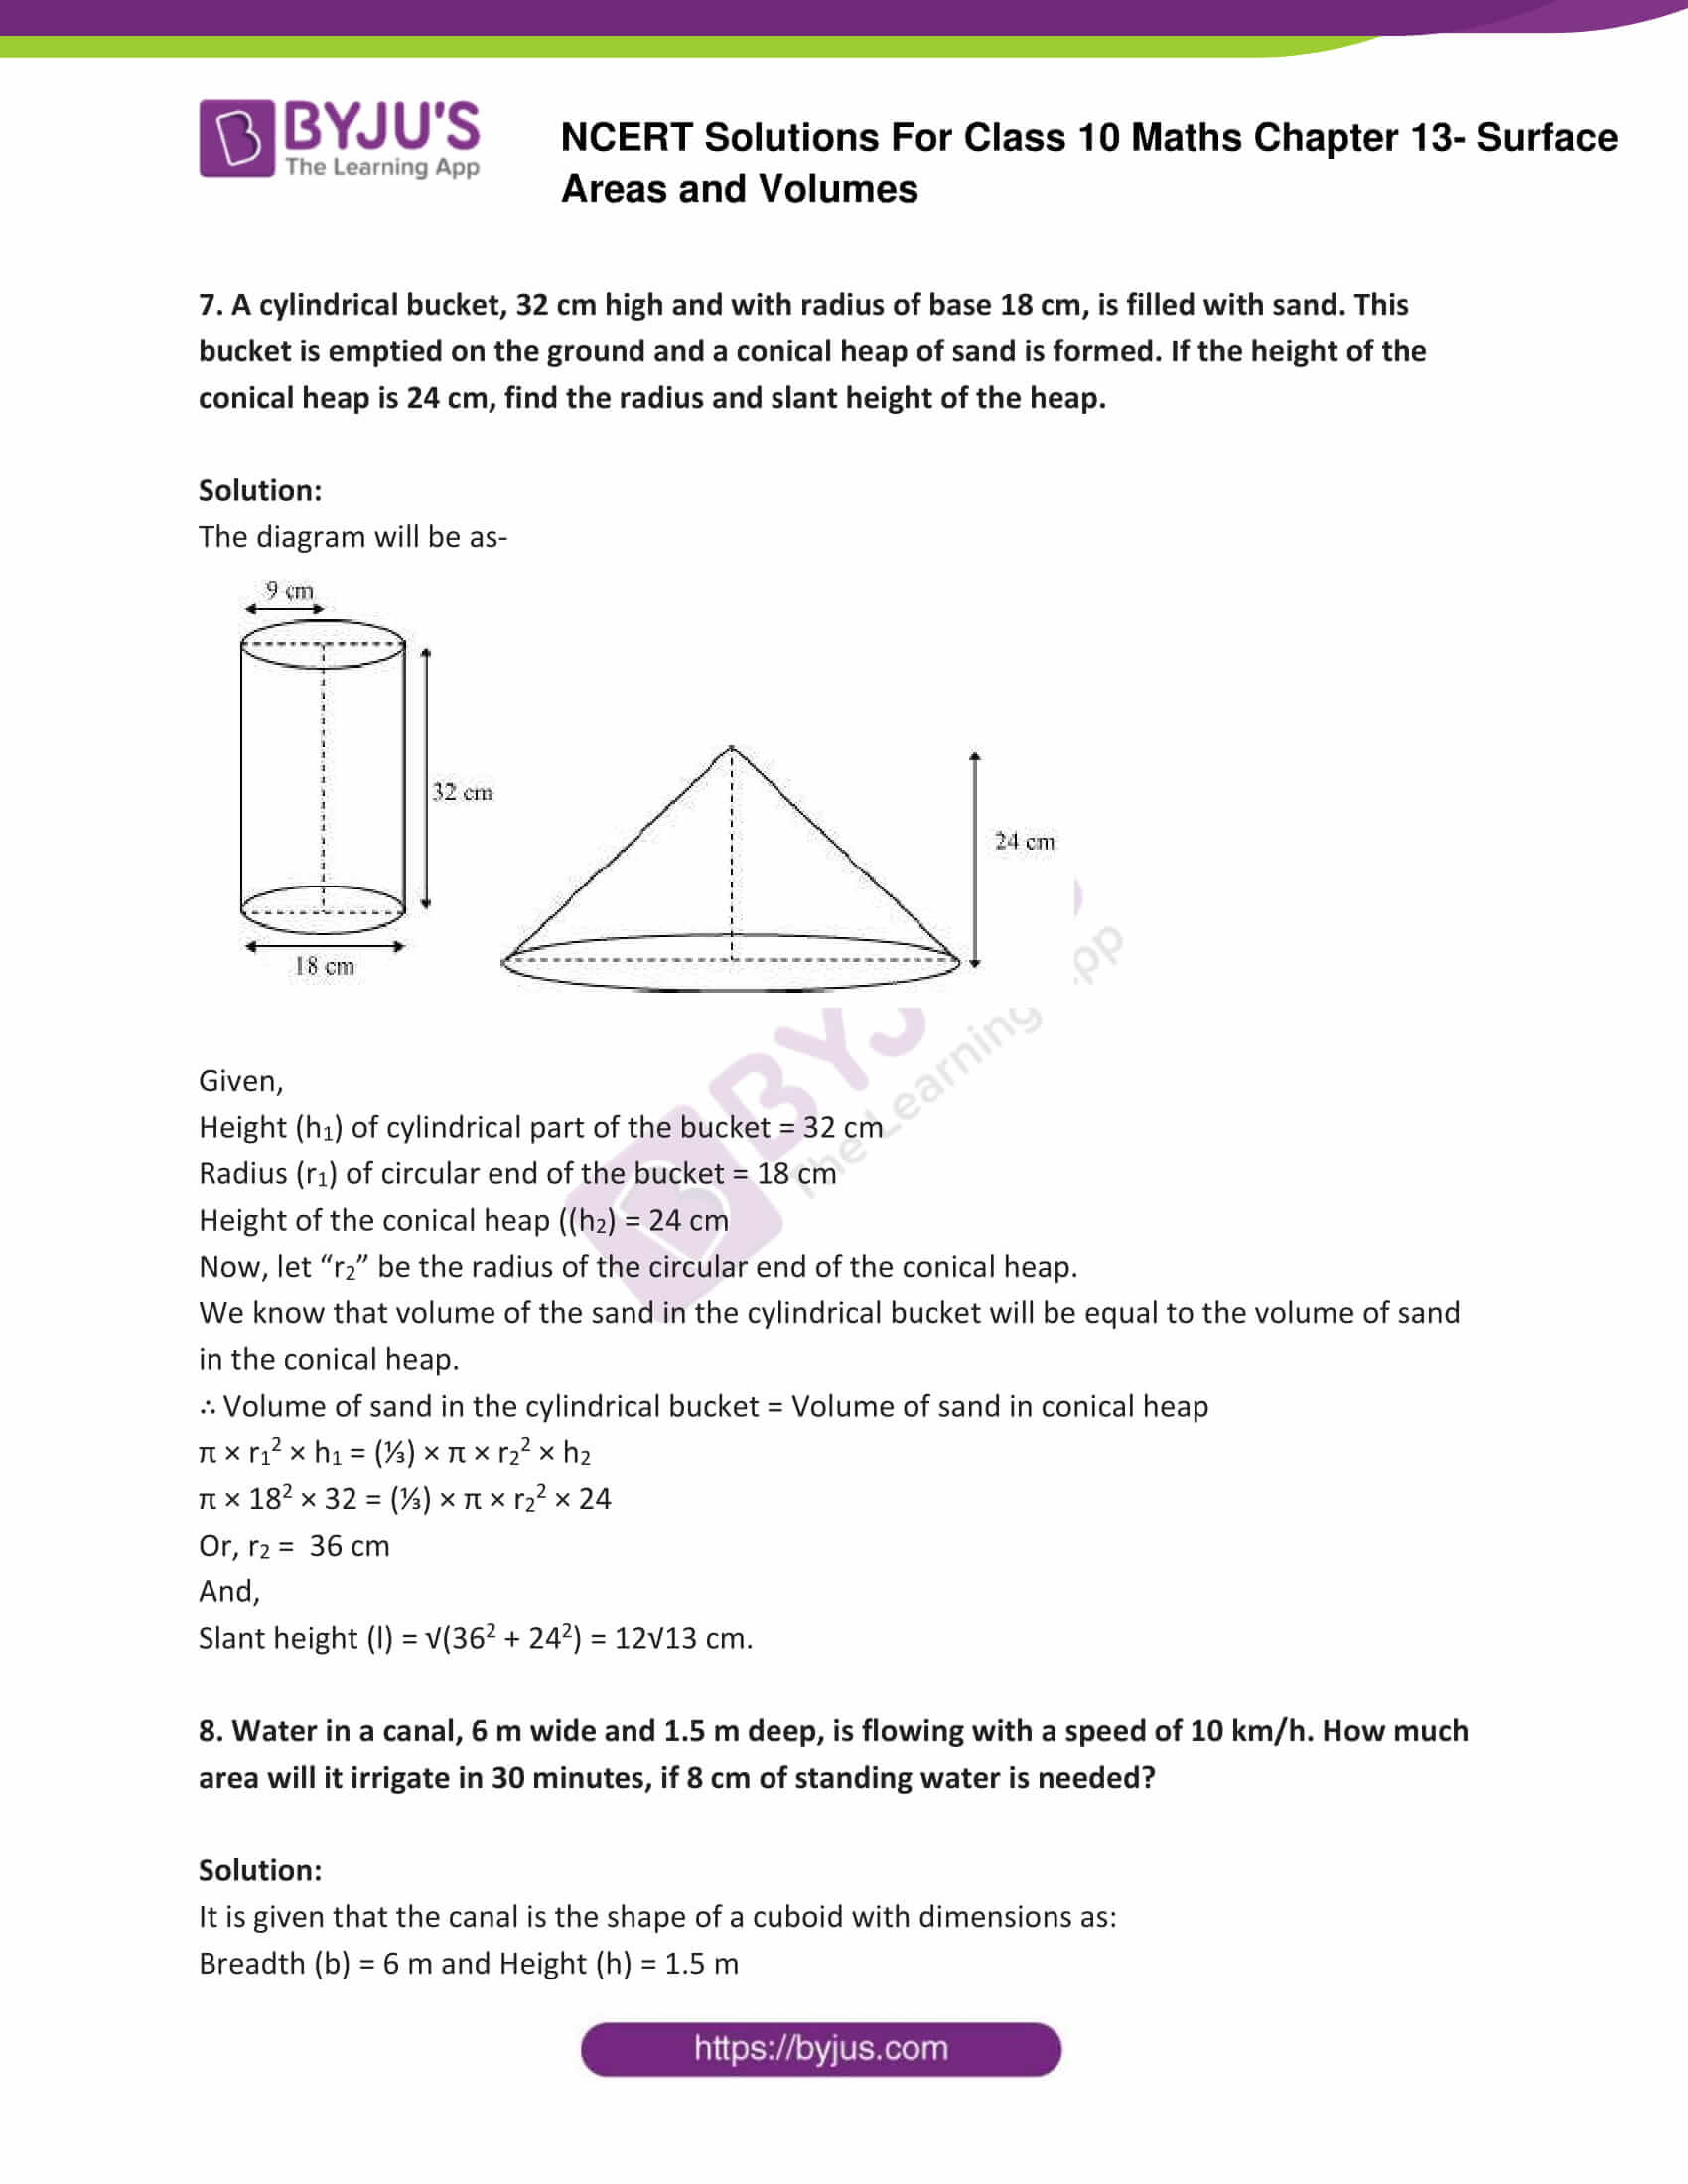 NCERT Solutions Class 10 Maths Chapter 13 Surface Areas and Volumes Part 18